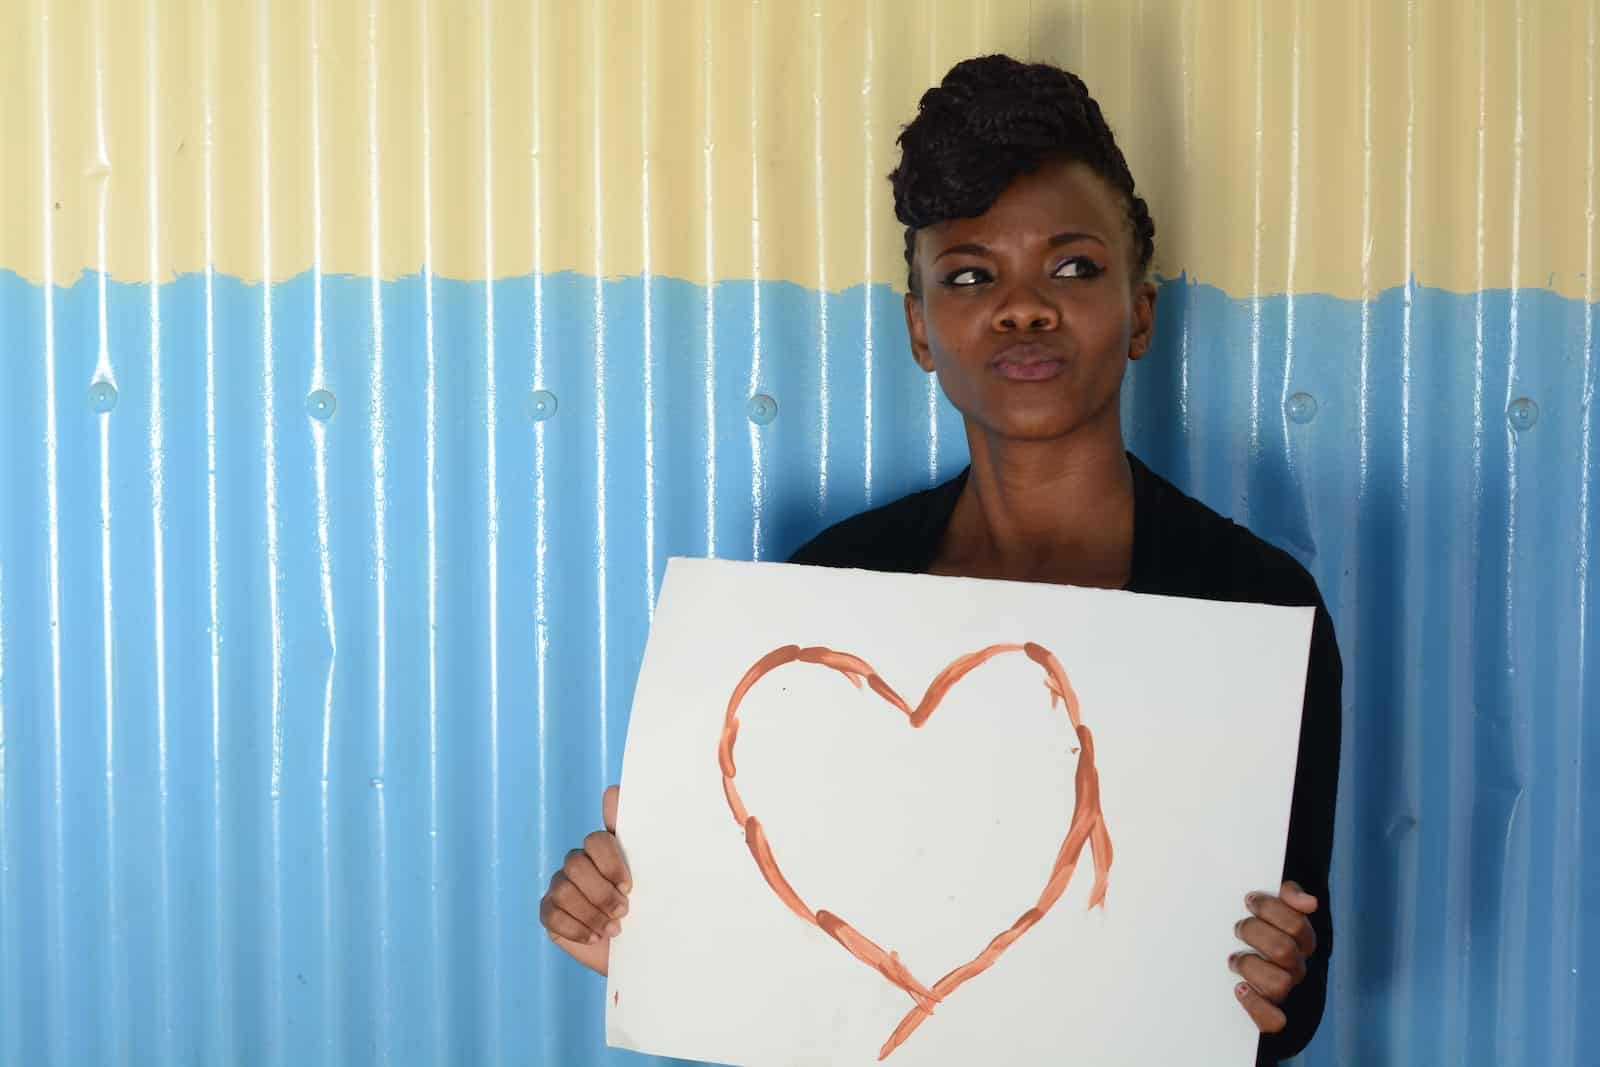 A young woman leans against a blue and white corrugated metal wall holding a white sign with a heart drawn on it.